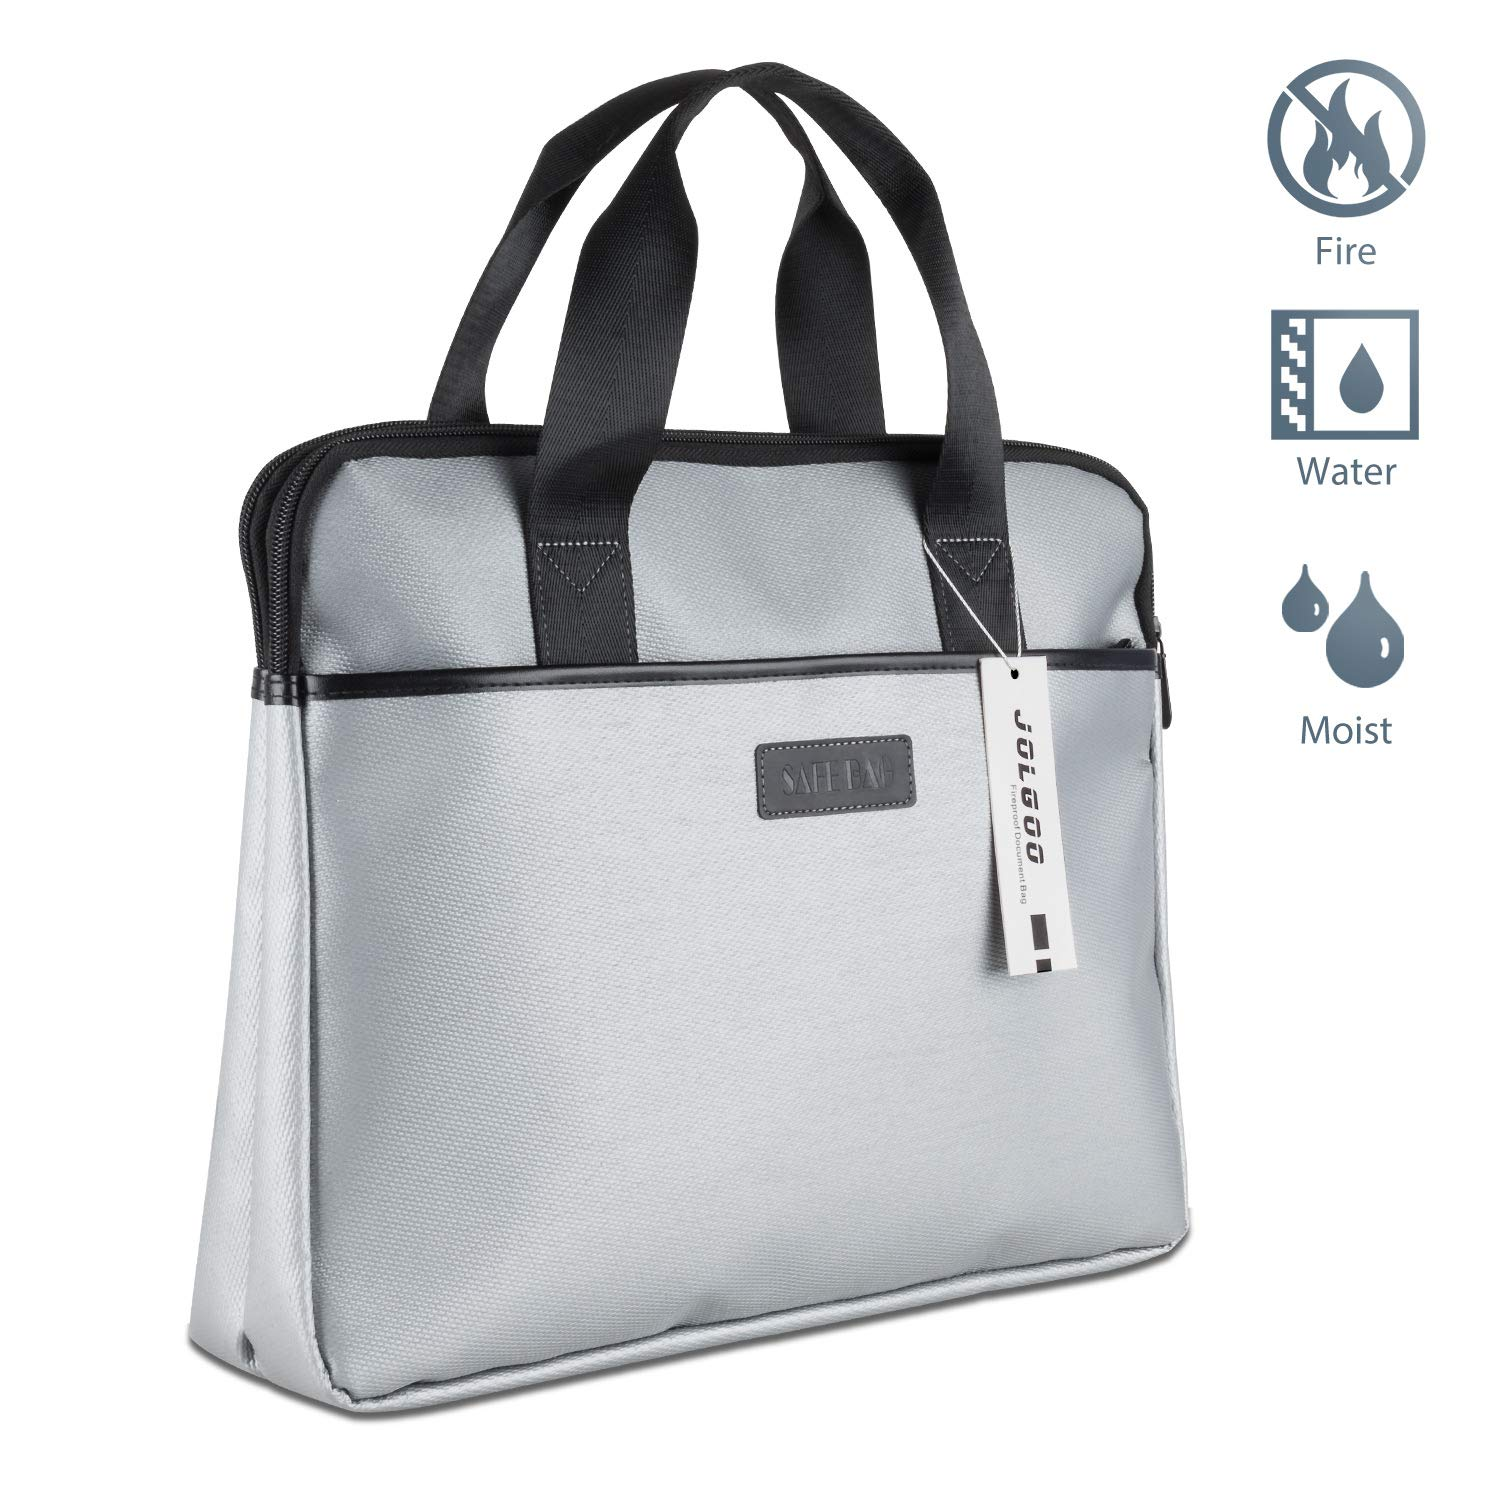 Premium Fireproof Document Bag with Three Zippers, Silicone Glass Fiber Won't Cause Itching. Big 15.3x12.6x2.9 Inches Withstands Intense Heat to 2,192 Degrees. Water Proof, Convenient Handles